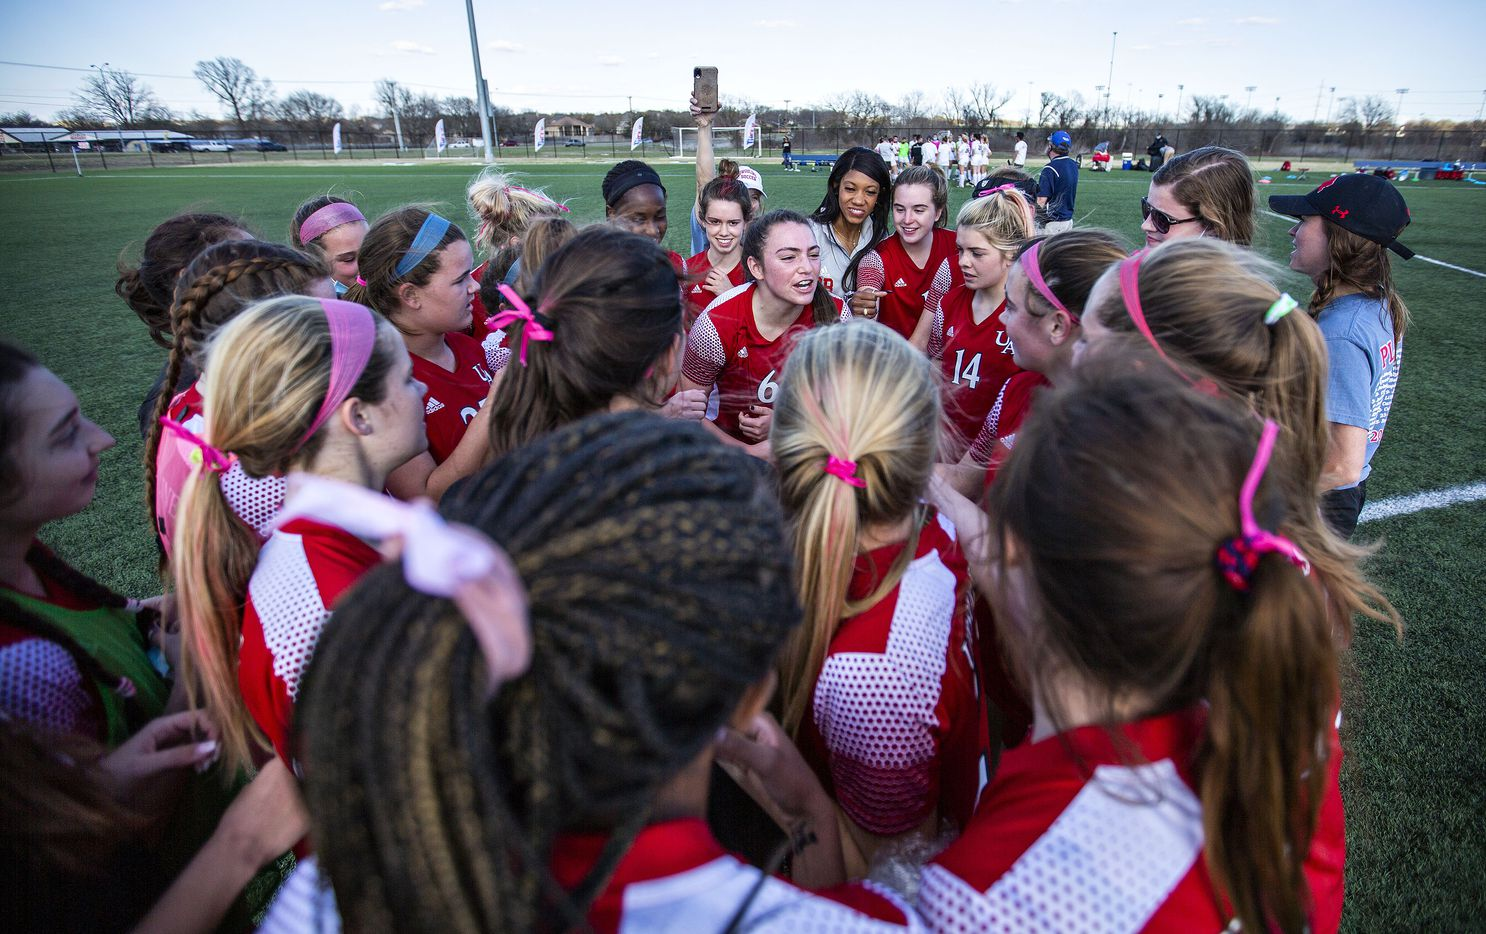 Ursuline's Kylie Dobbs (6) ramps up her team after their win over St. Agnes at their division 1 championship game at the Round Rock Multi Purpose Complex on March 5, 2021 in Round Rock, Texas. (Thao Nguyen/Special Contributor)